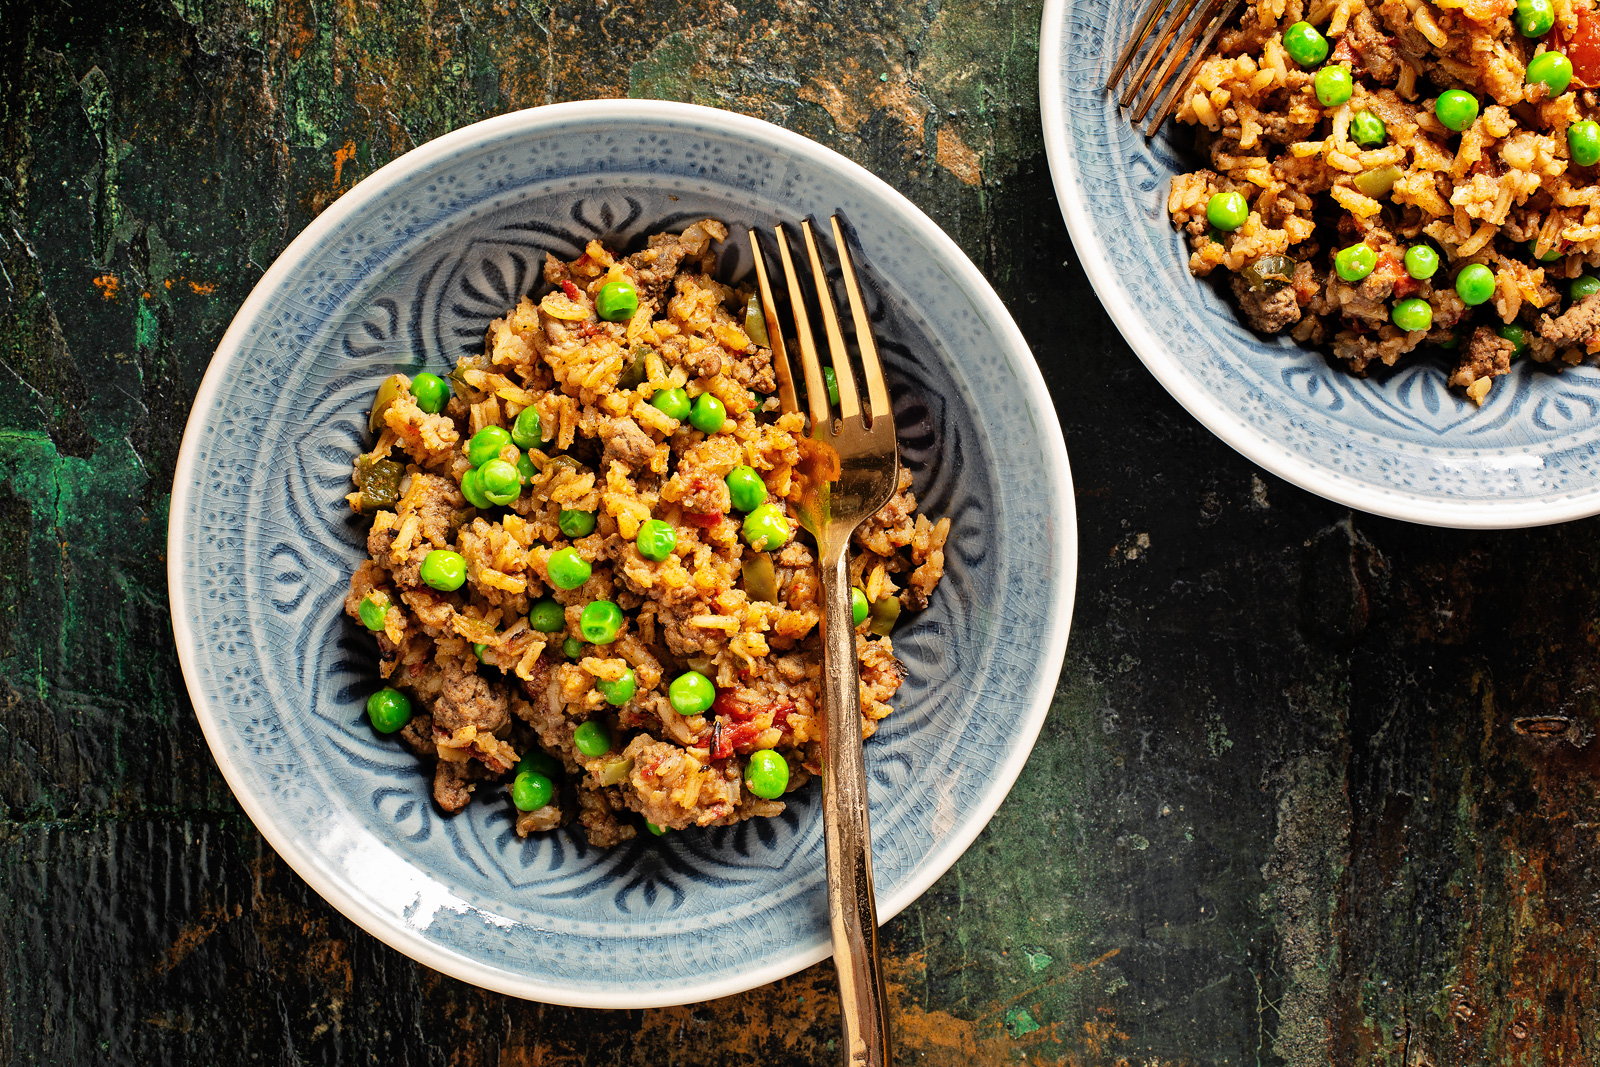 Bowls of Spanish rice with seasoned ground beef and peas.